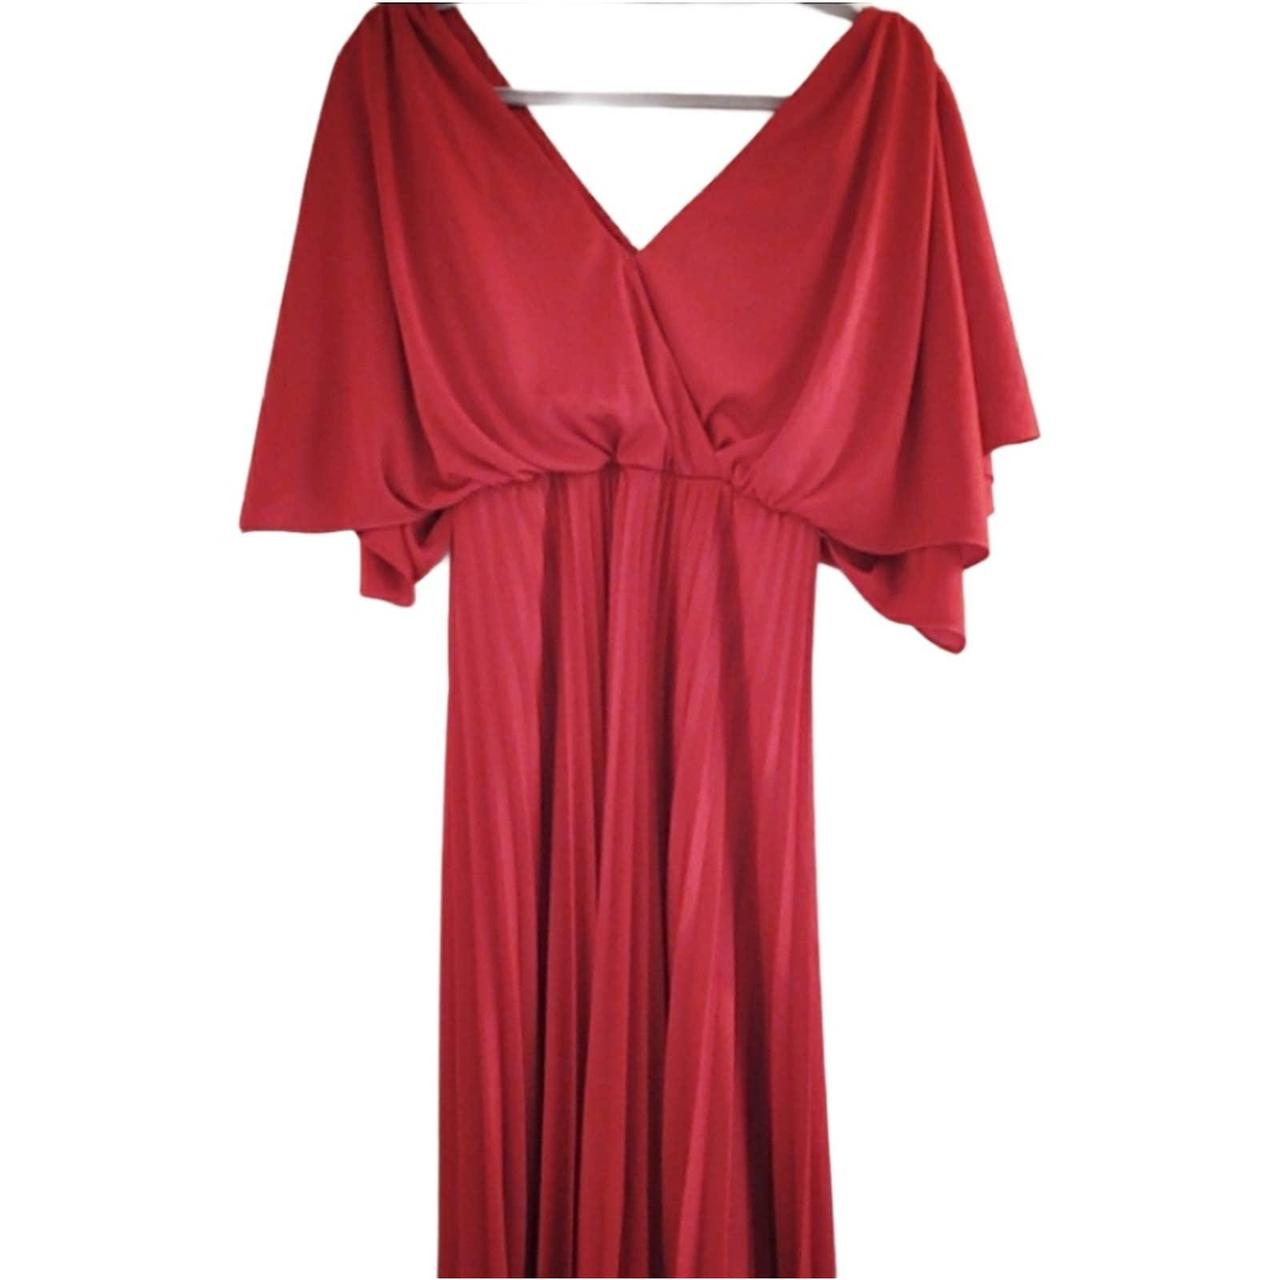 Product Image 1 - Vintage dress  In excellent condition Still